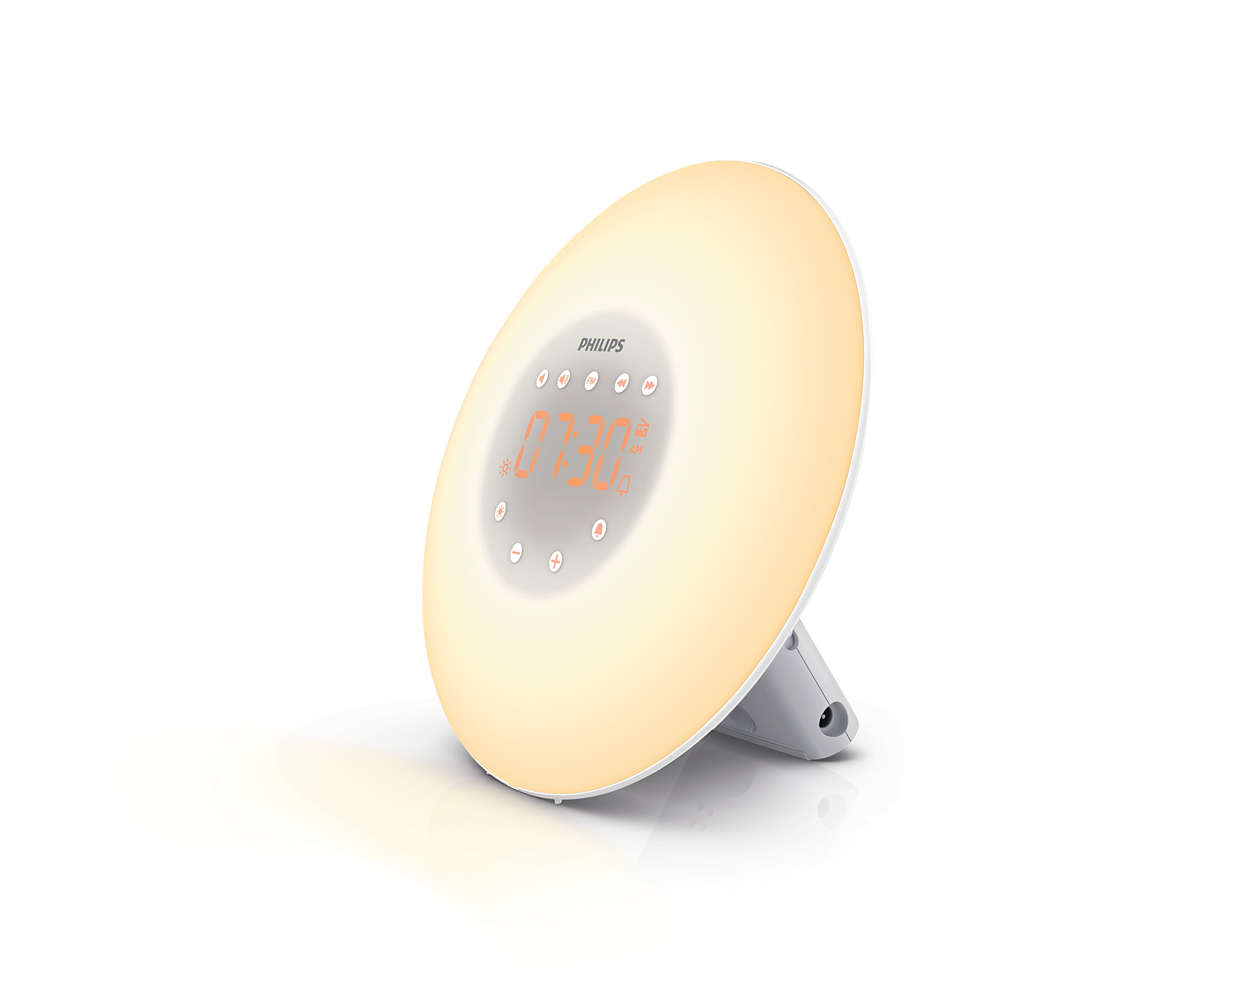 Wake Up Light Hf3500 60 Philips